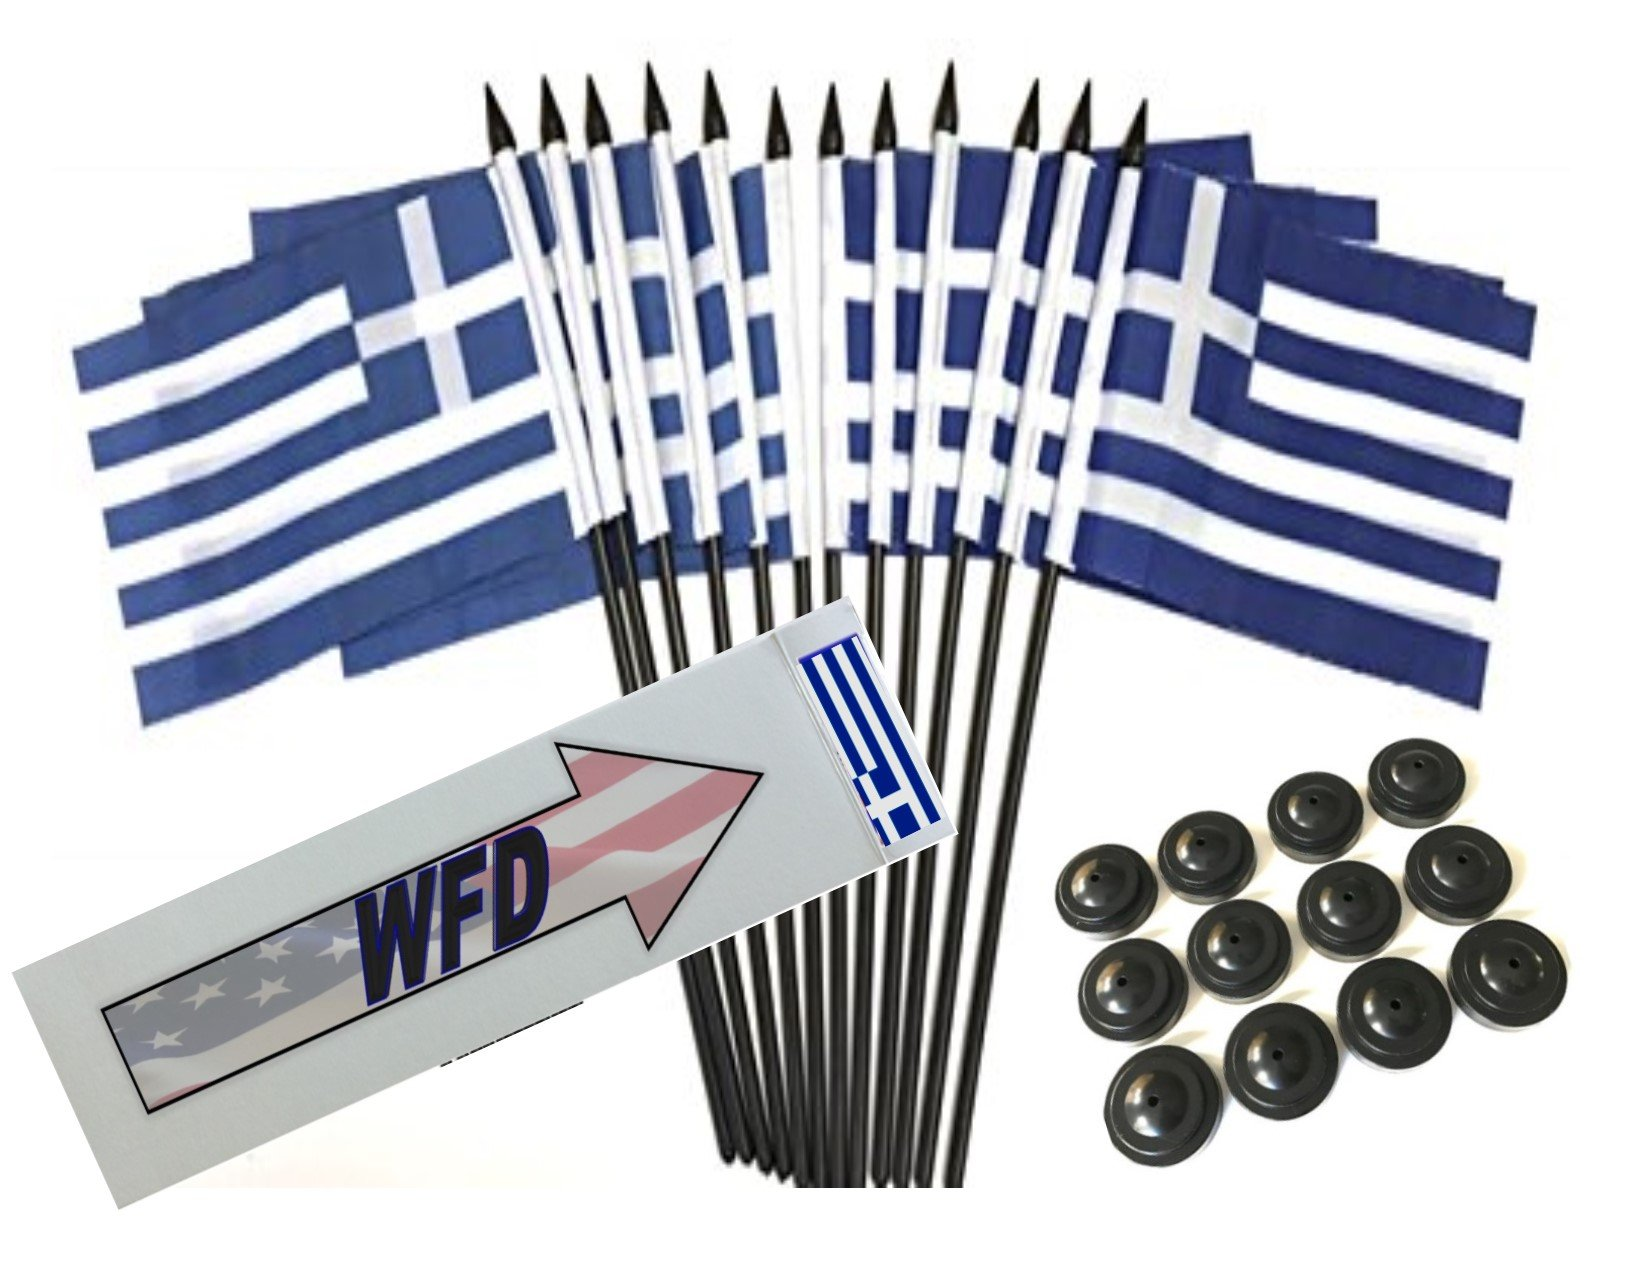 Box of 12 Greece 4''x6'' Polyester Miniature Desk & Little Table Flags, 4x6 Greek Small Mini Hand Waving Stick Flags with 12 Flag Bases (Stands)